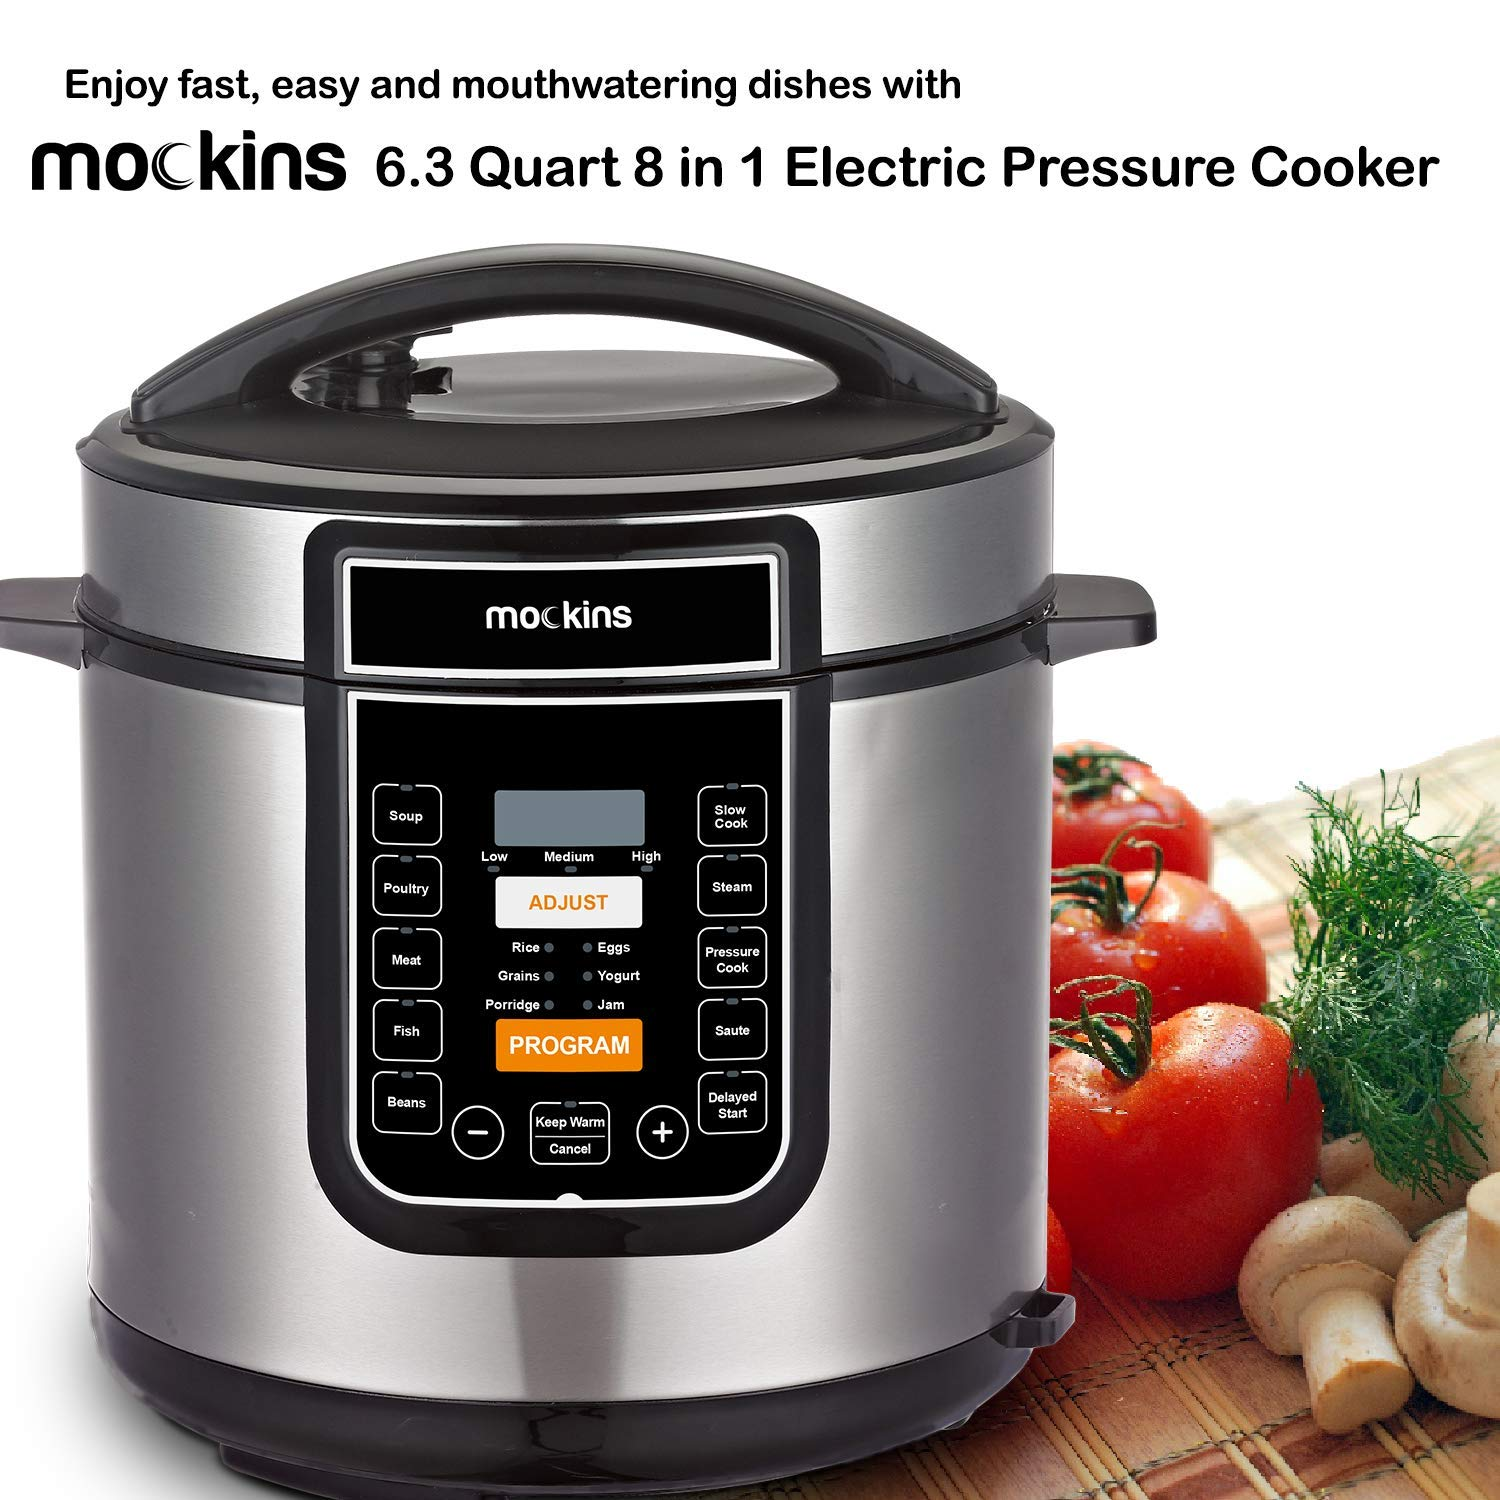 Mockins 6 Liter 8 in 1 Electric Pressure Cooker with 16 Functions Including Rice Cooker | Slow Cooker | Steamer | Yogurt Maker | and More